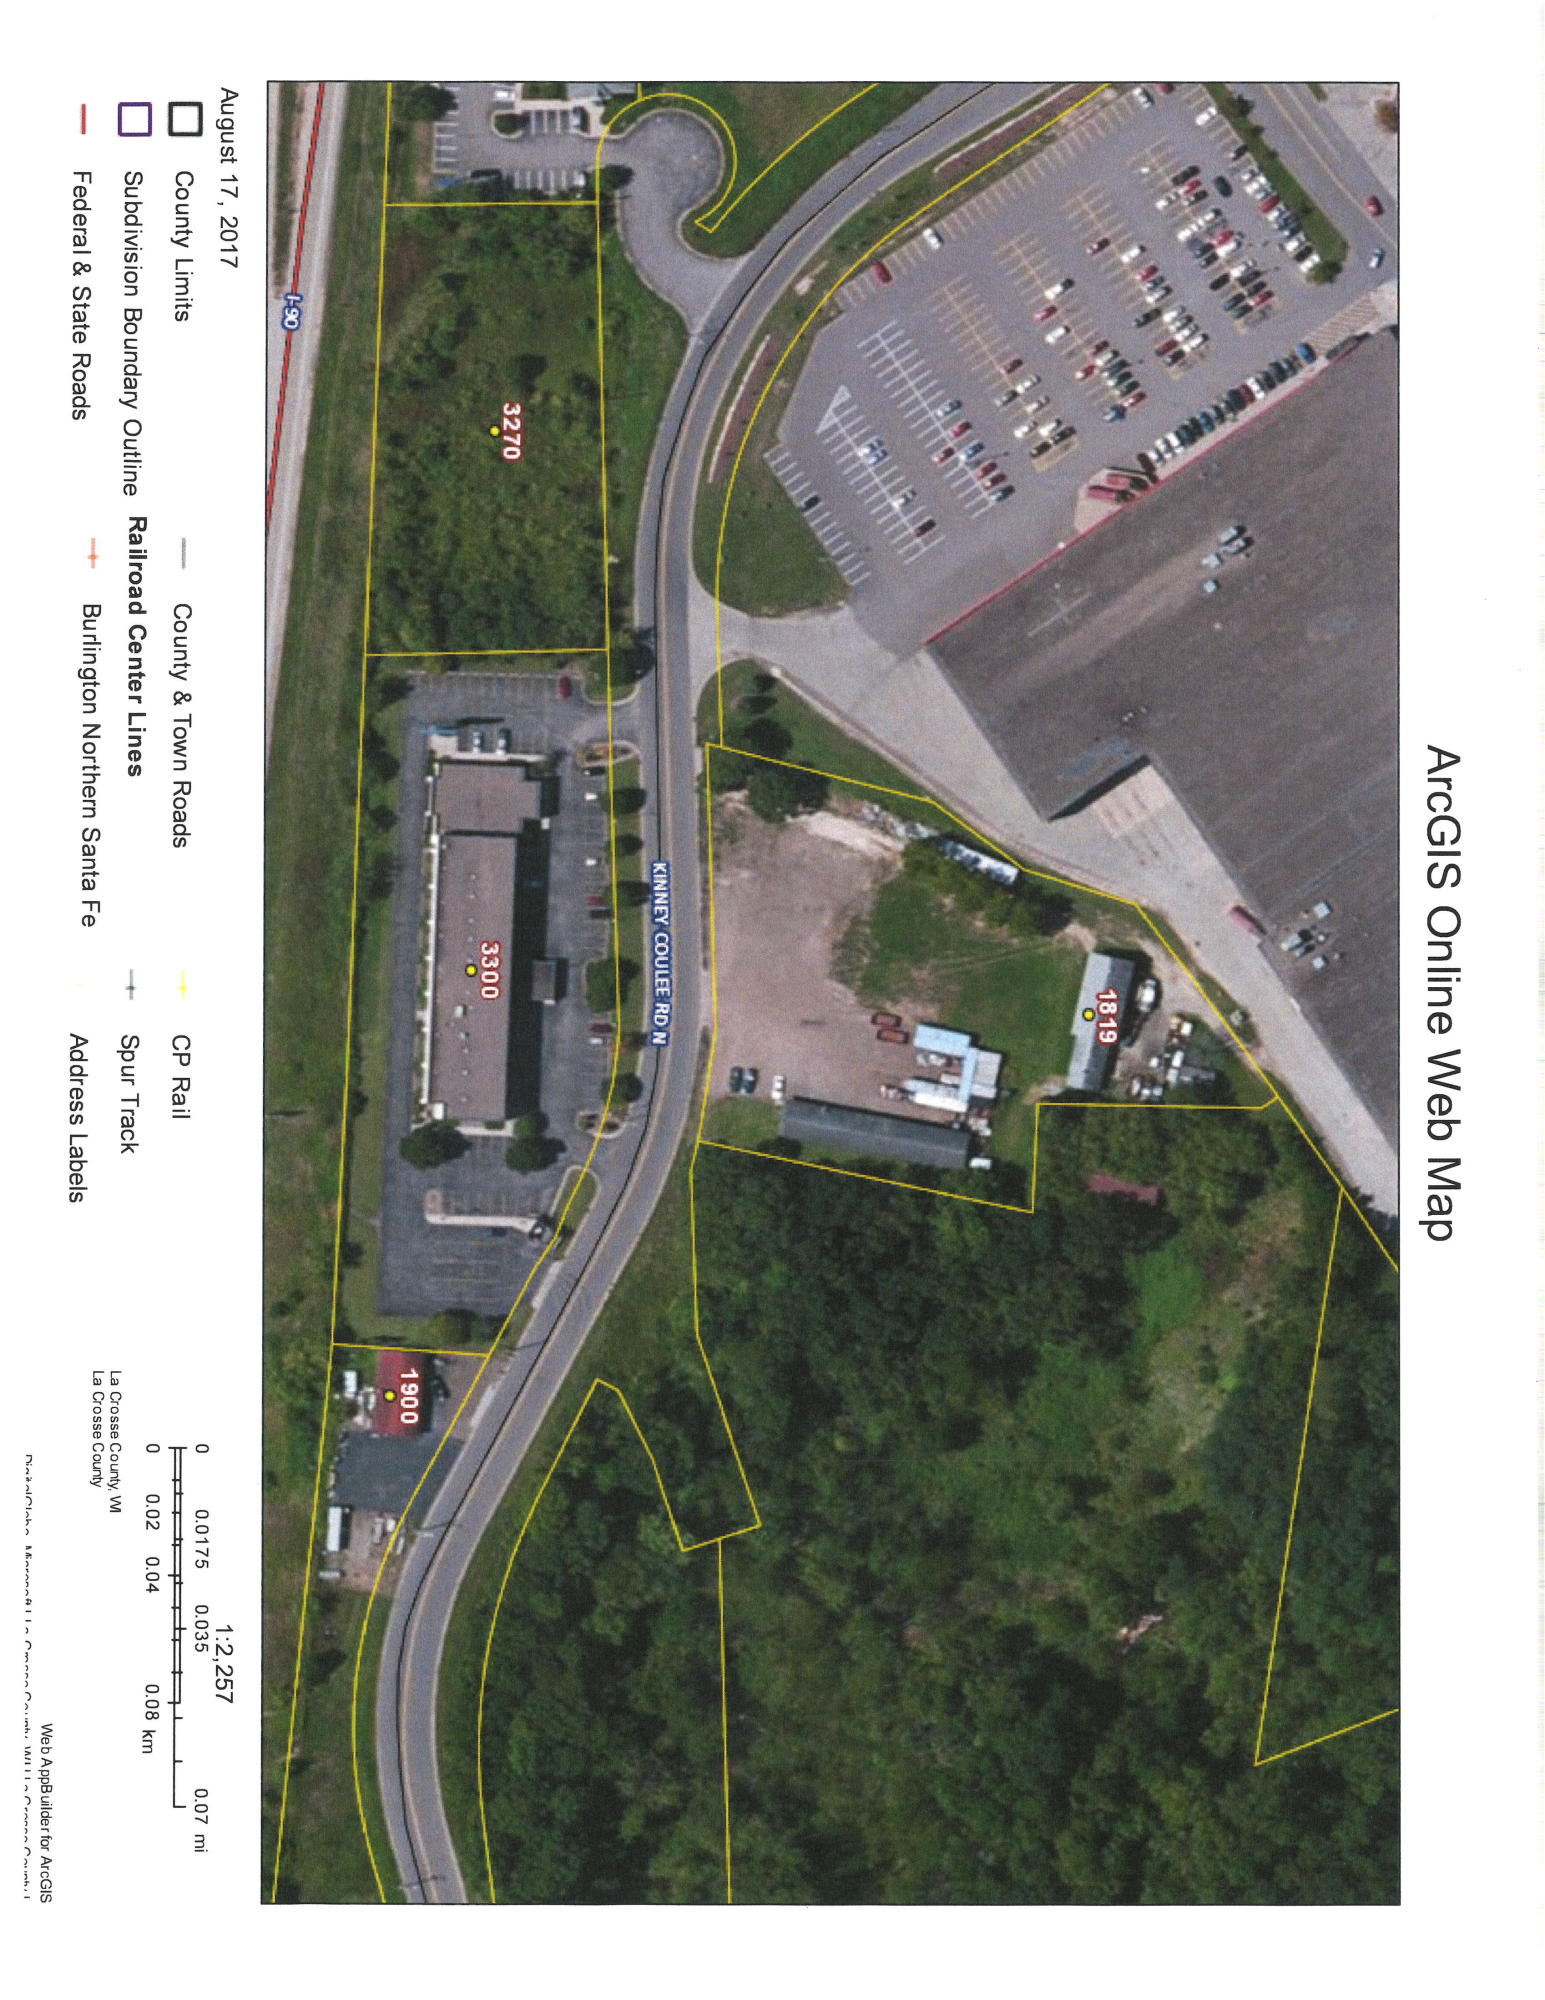 1819 KINNEY COULEE RD N, Onalaska, Wisconsin 54650, ,Vacant Land,For Sale,KINNEY COULEE RD N,1569551